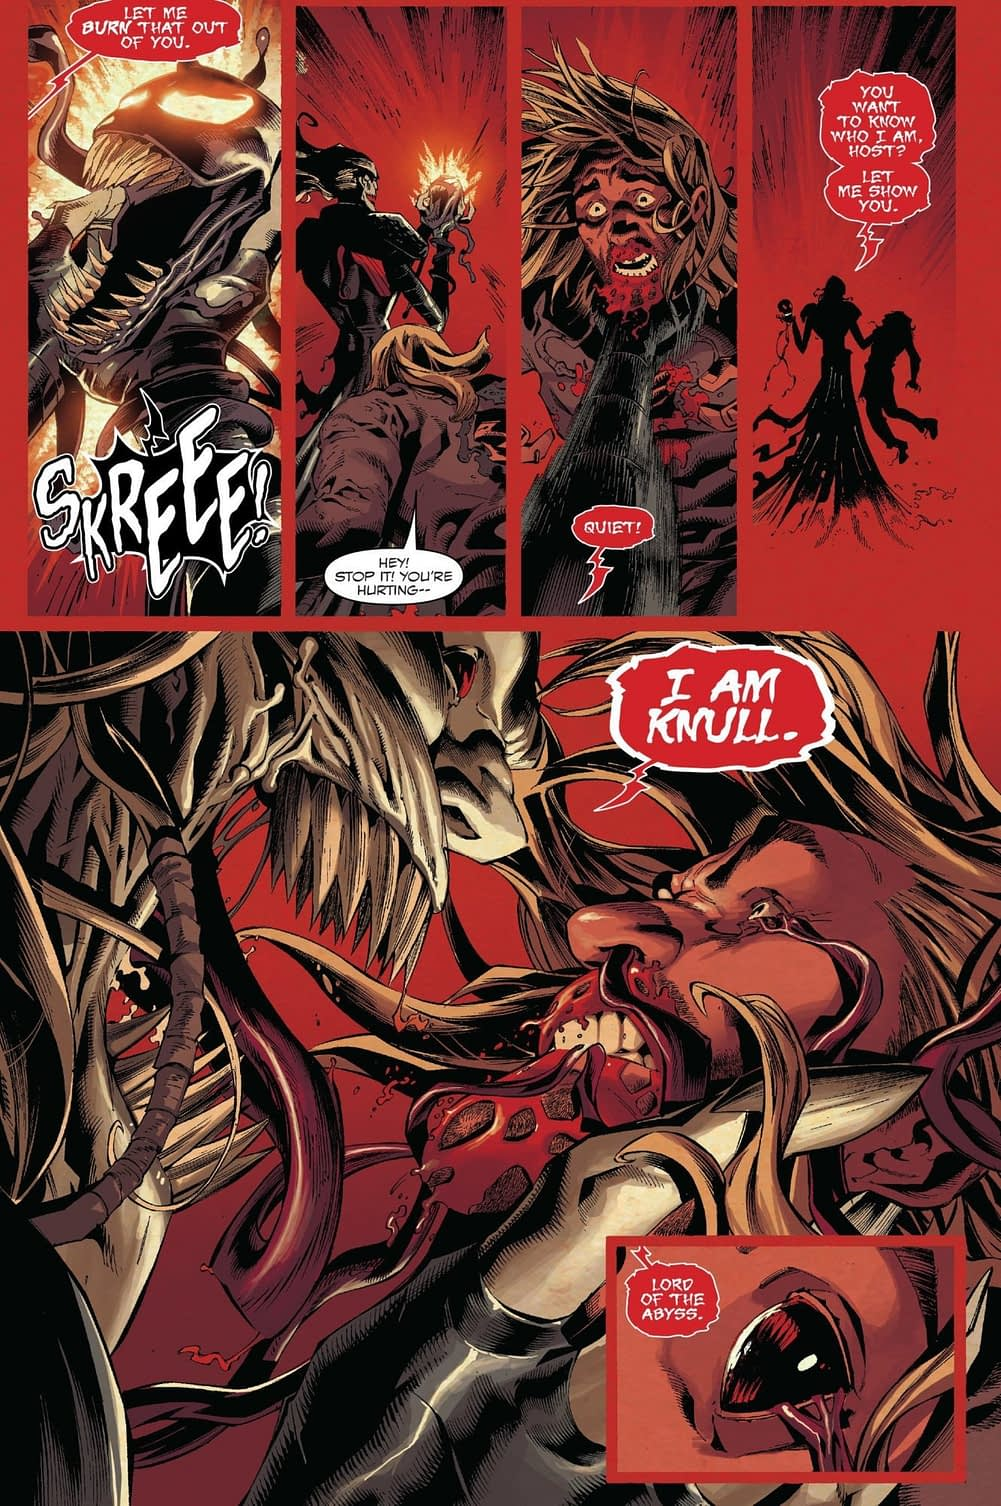 The Rather Sweary True Meaning of Knull [Venom #3 Spoilers]